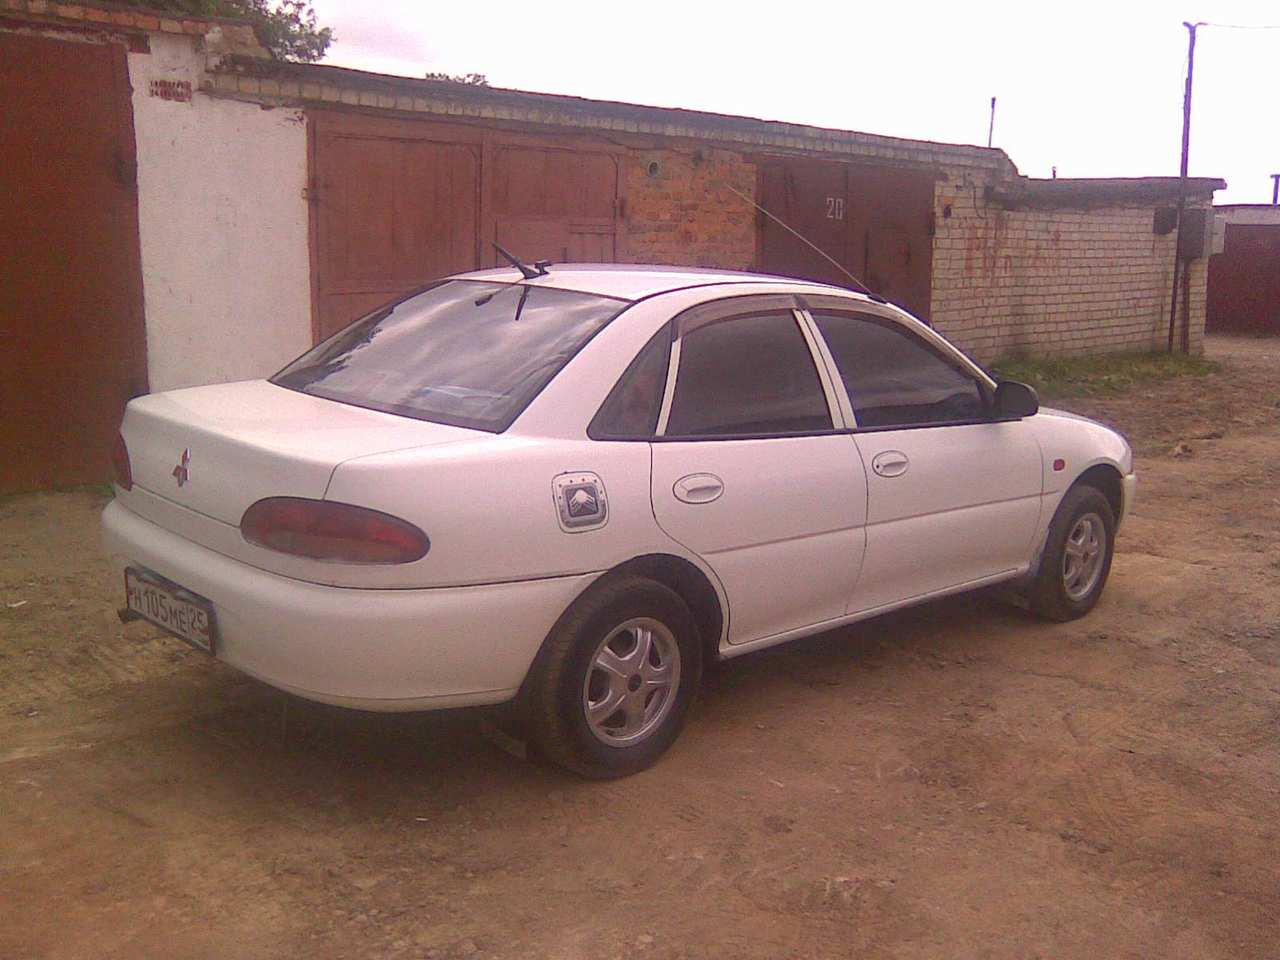 Used 1992 Mitsubishi Mirage Photos, 1500cc., Gasoline, FF, Manual For Sale